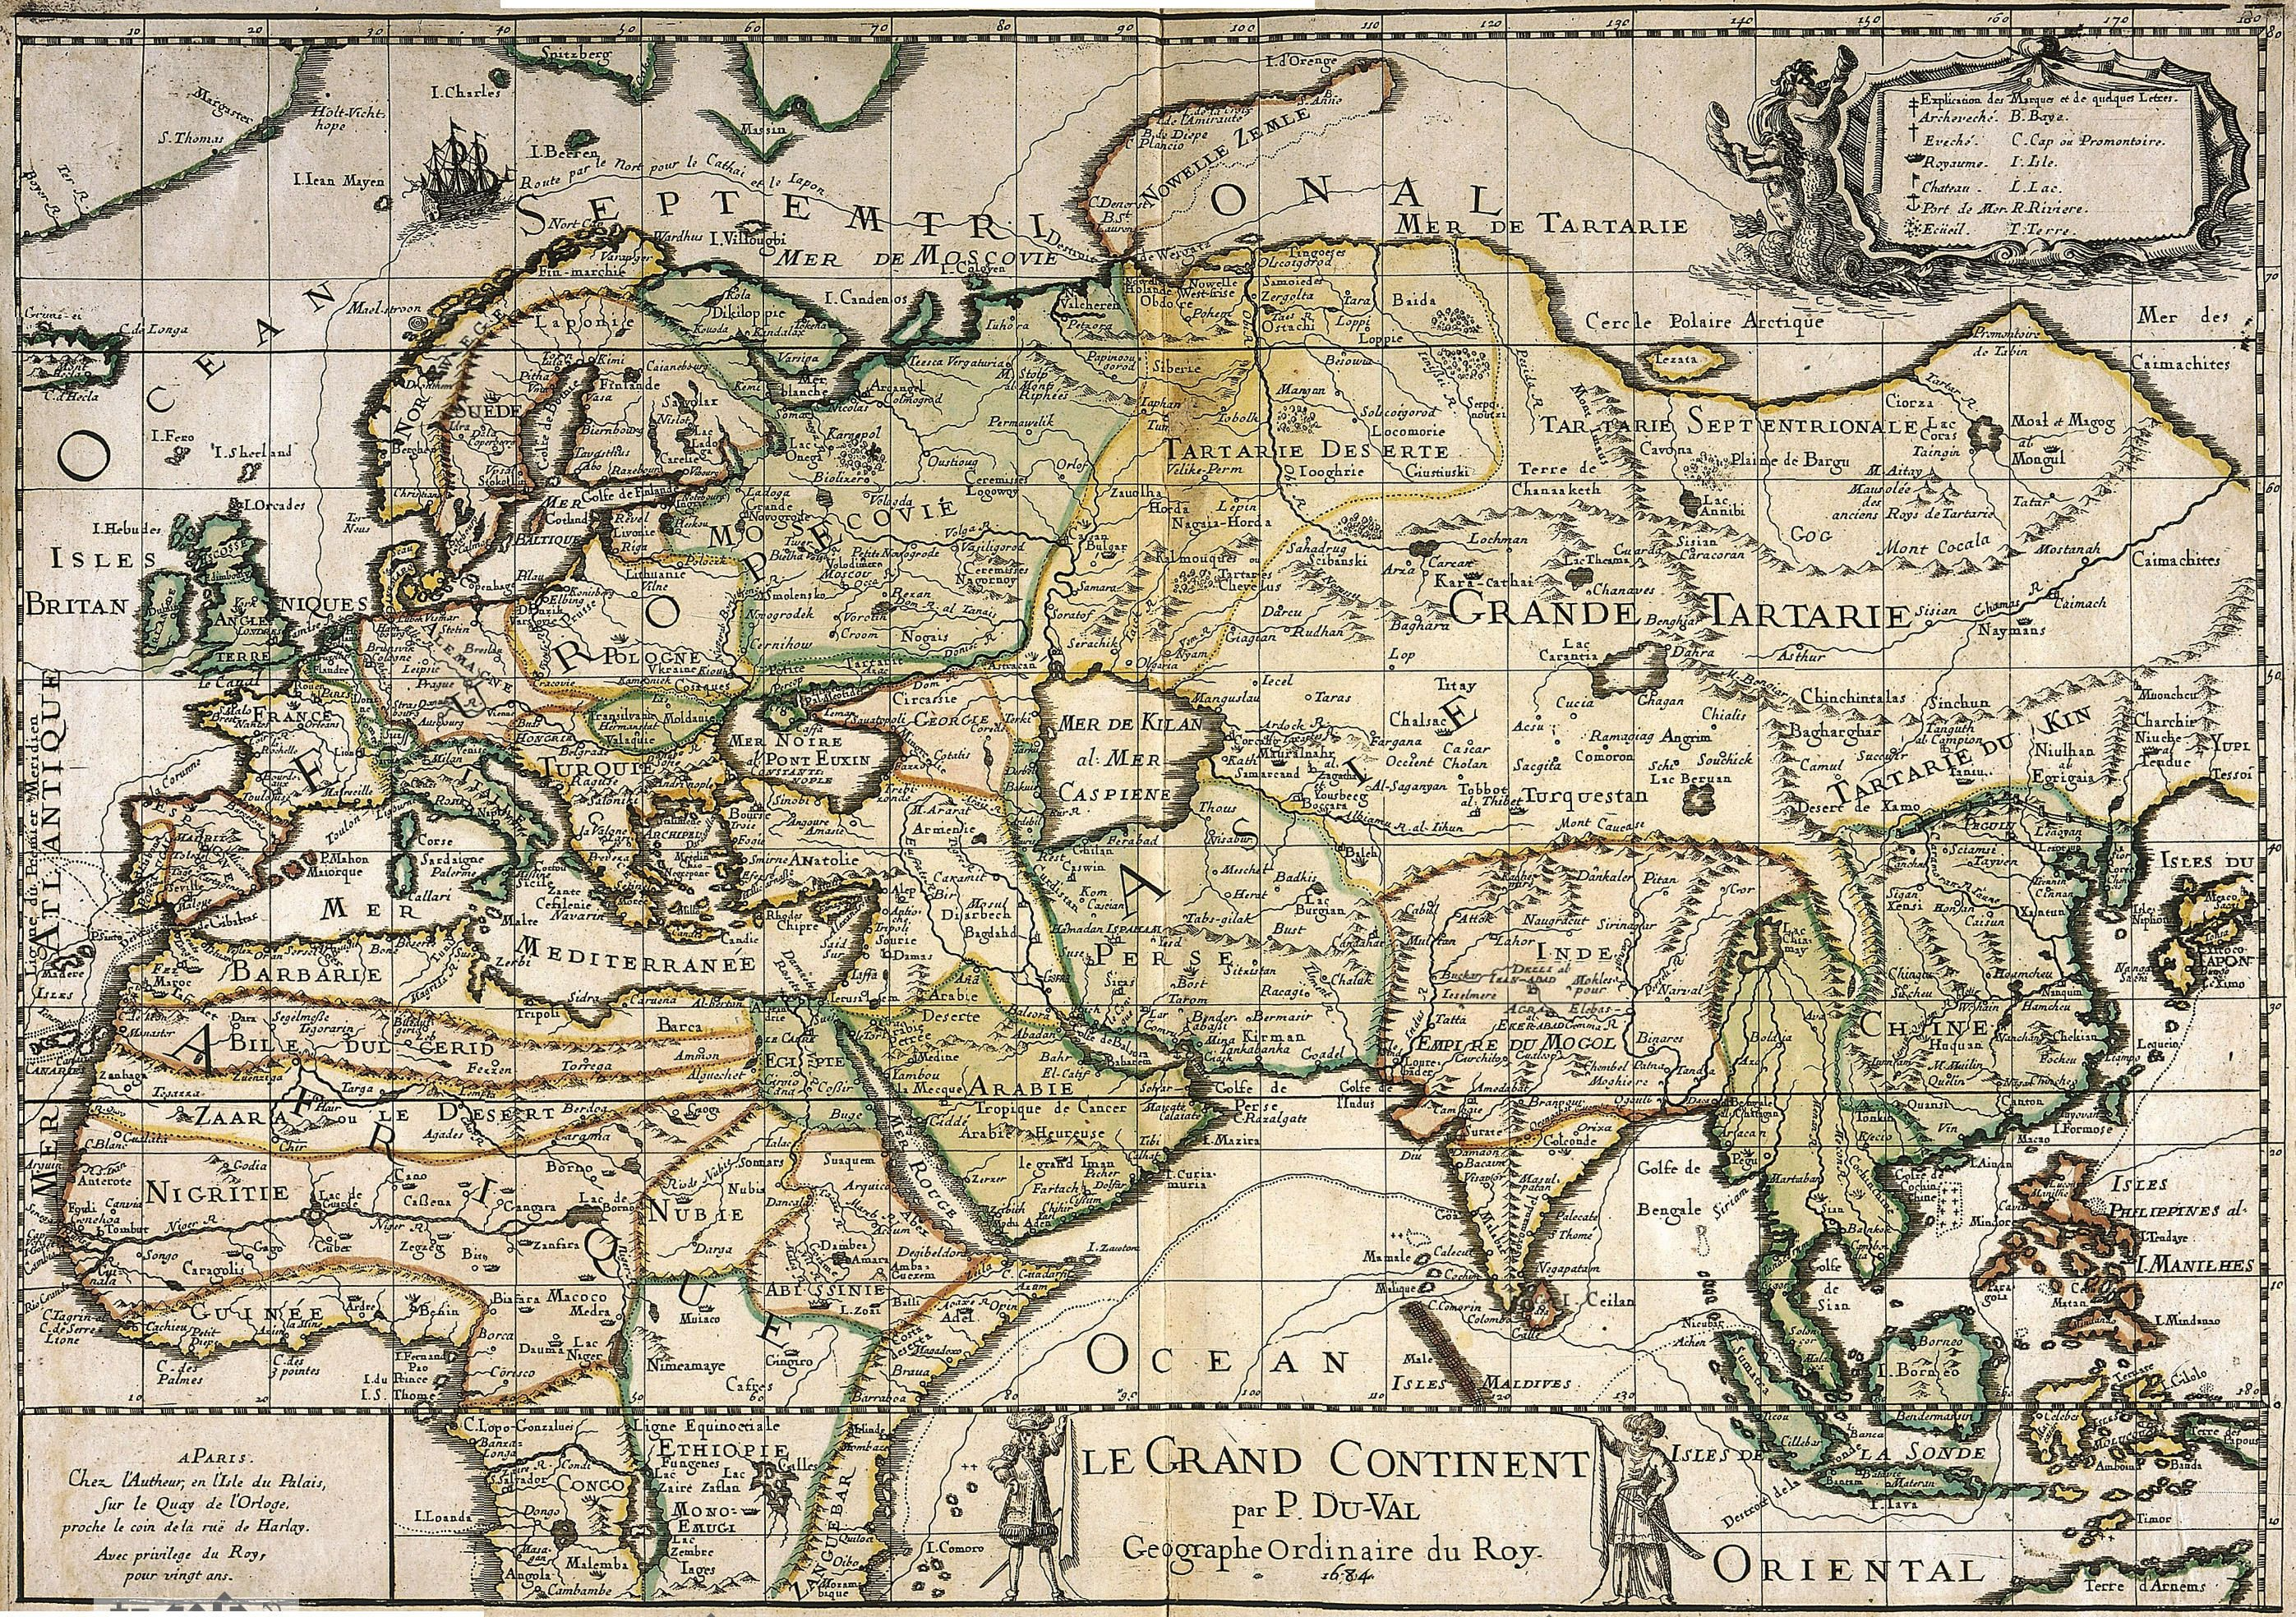 Old map of the World from 1684 year 2794—1968 History